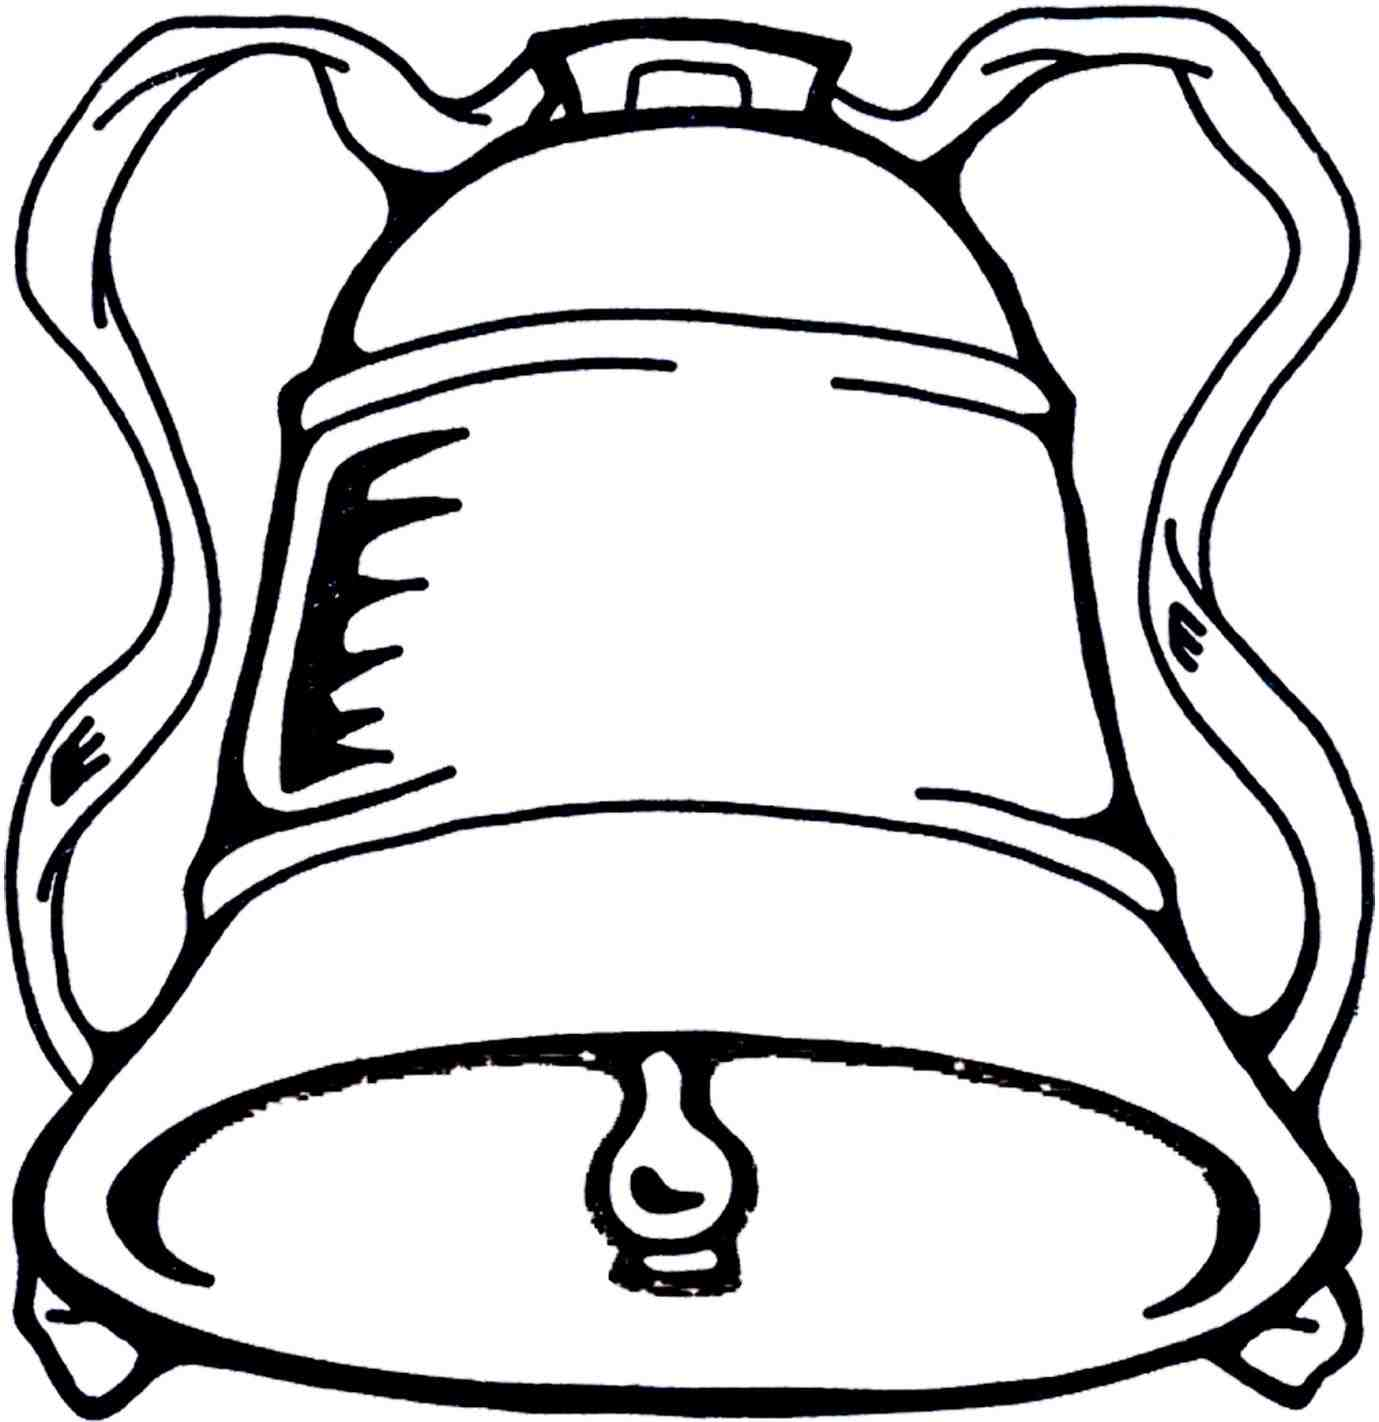 1379x1422 Freehand Drawing Stock Vector With Free Clip Art S Christmas Bell